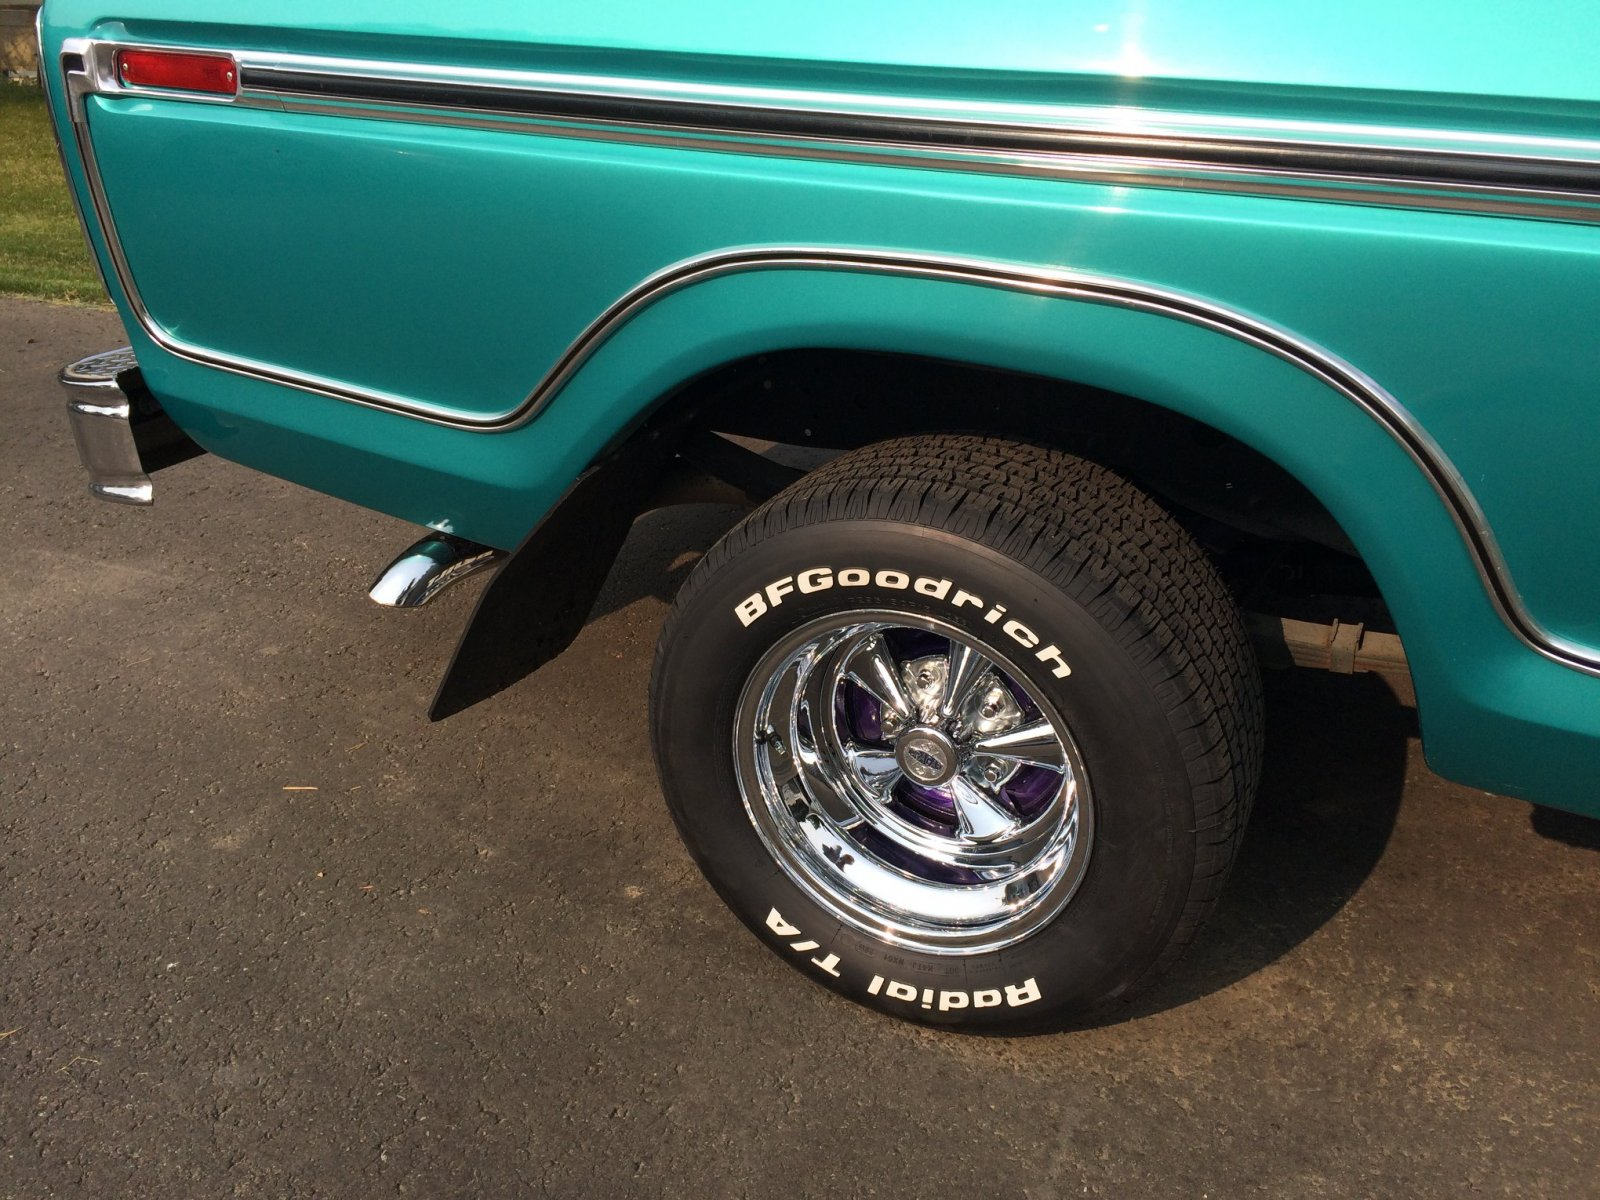 1977 Ford F-150 With a 460 Green 4.jpg